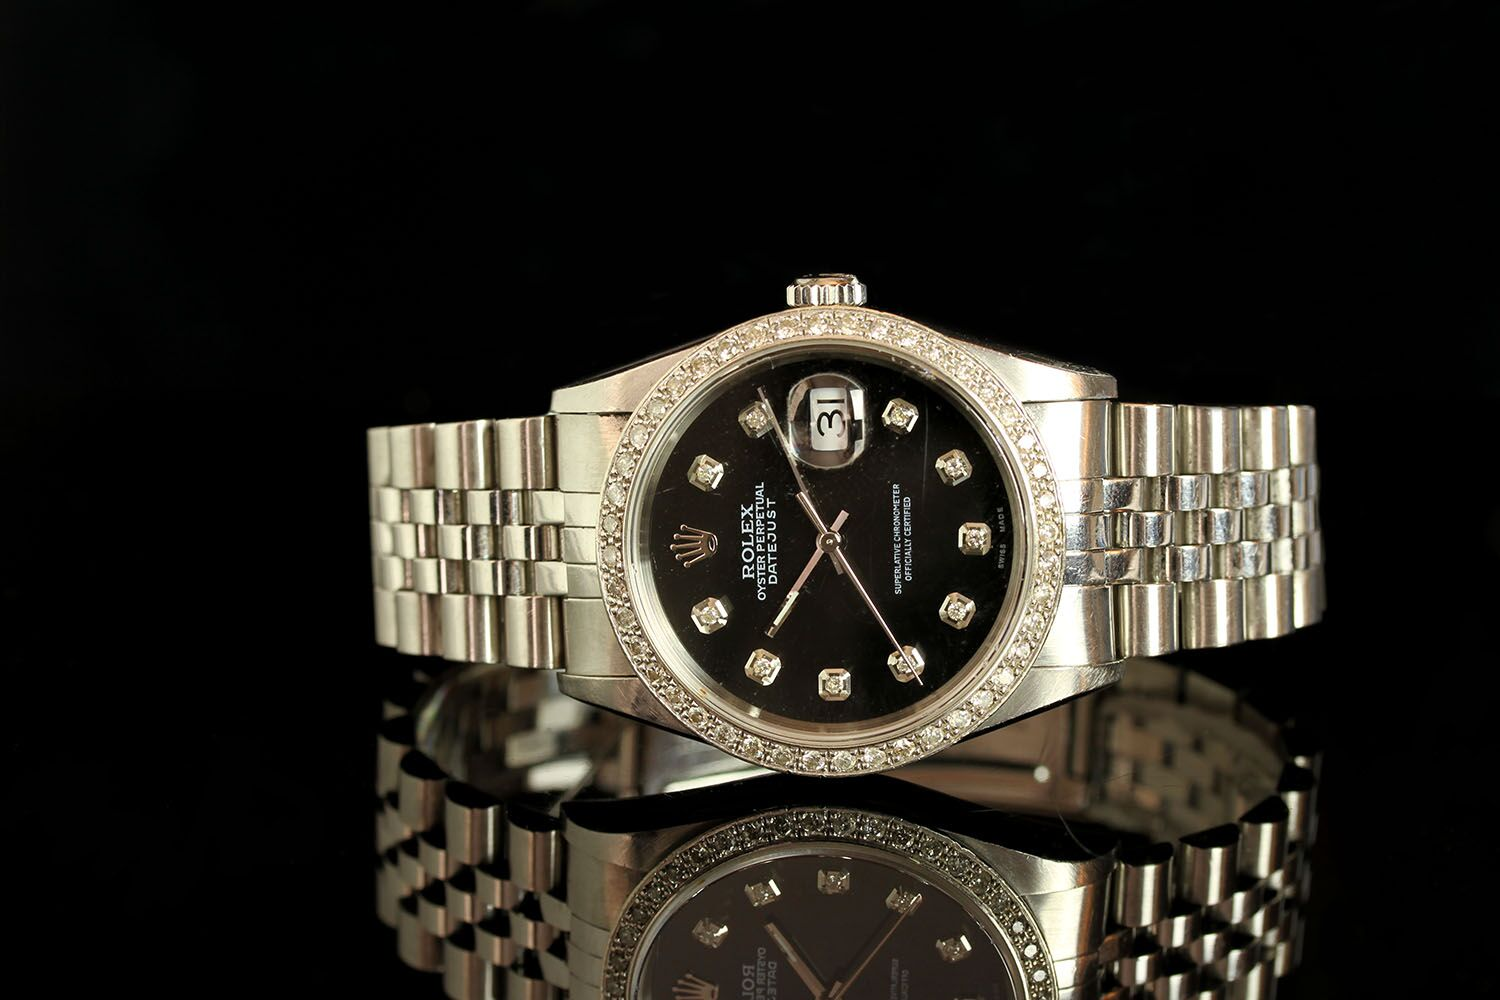 GENTLEMAN'S ROLEX DATEJUST DIAMOND SET , MODEL 16234,SN K61...., CIRCA 2001, round, black dial